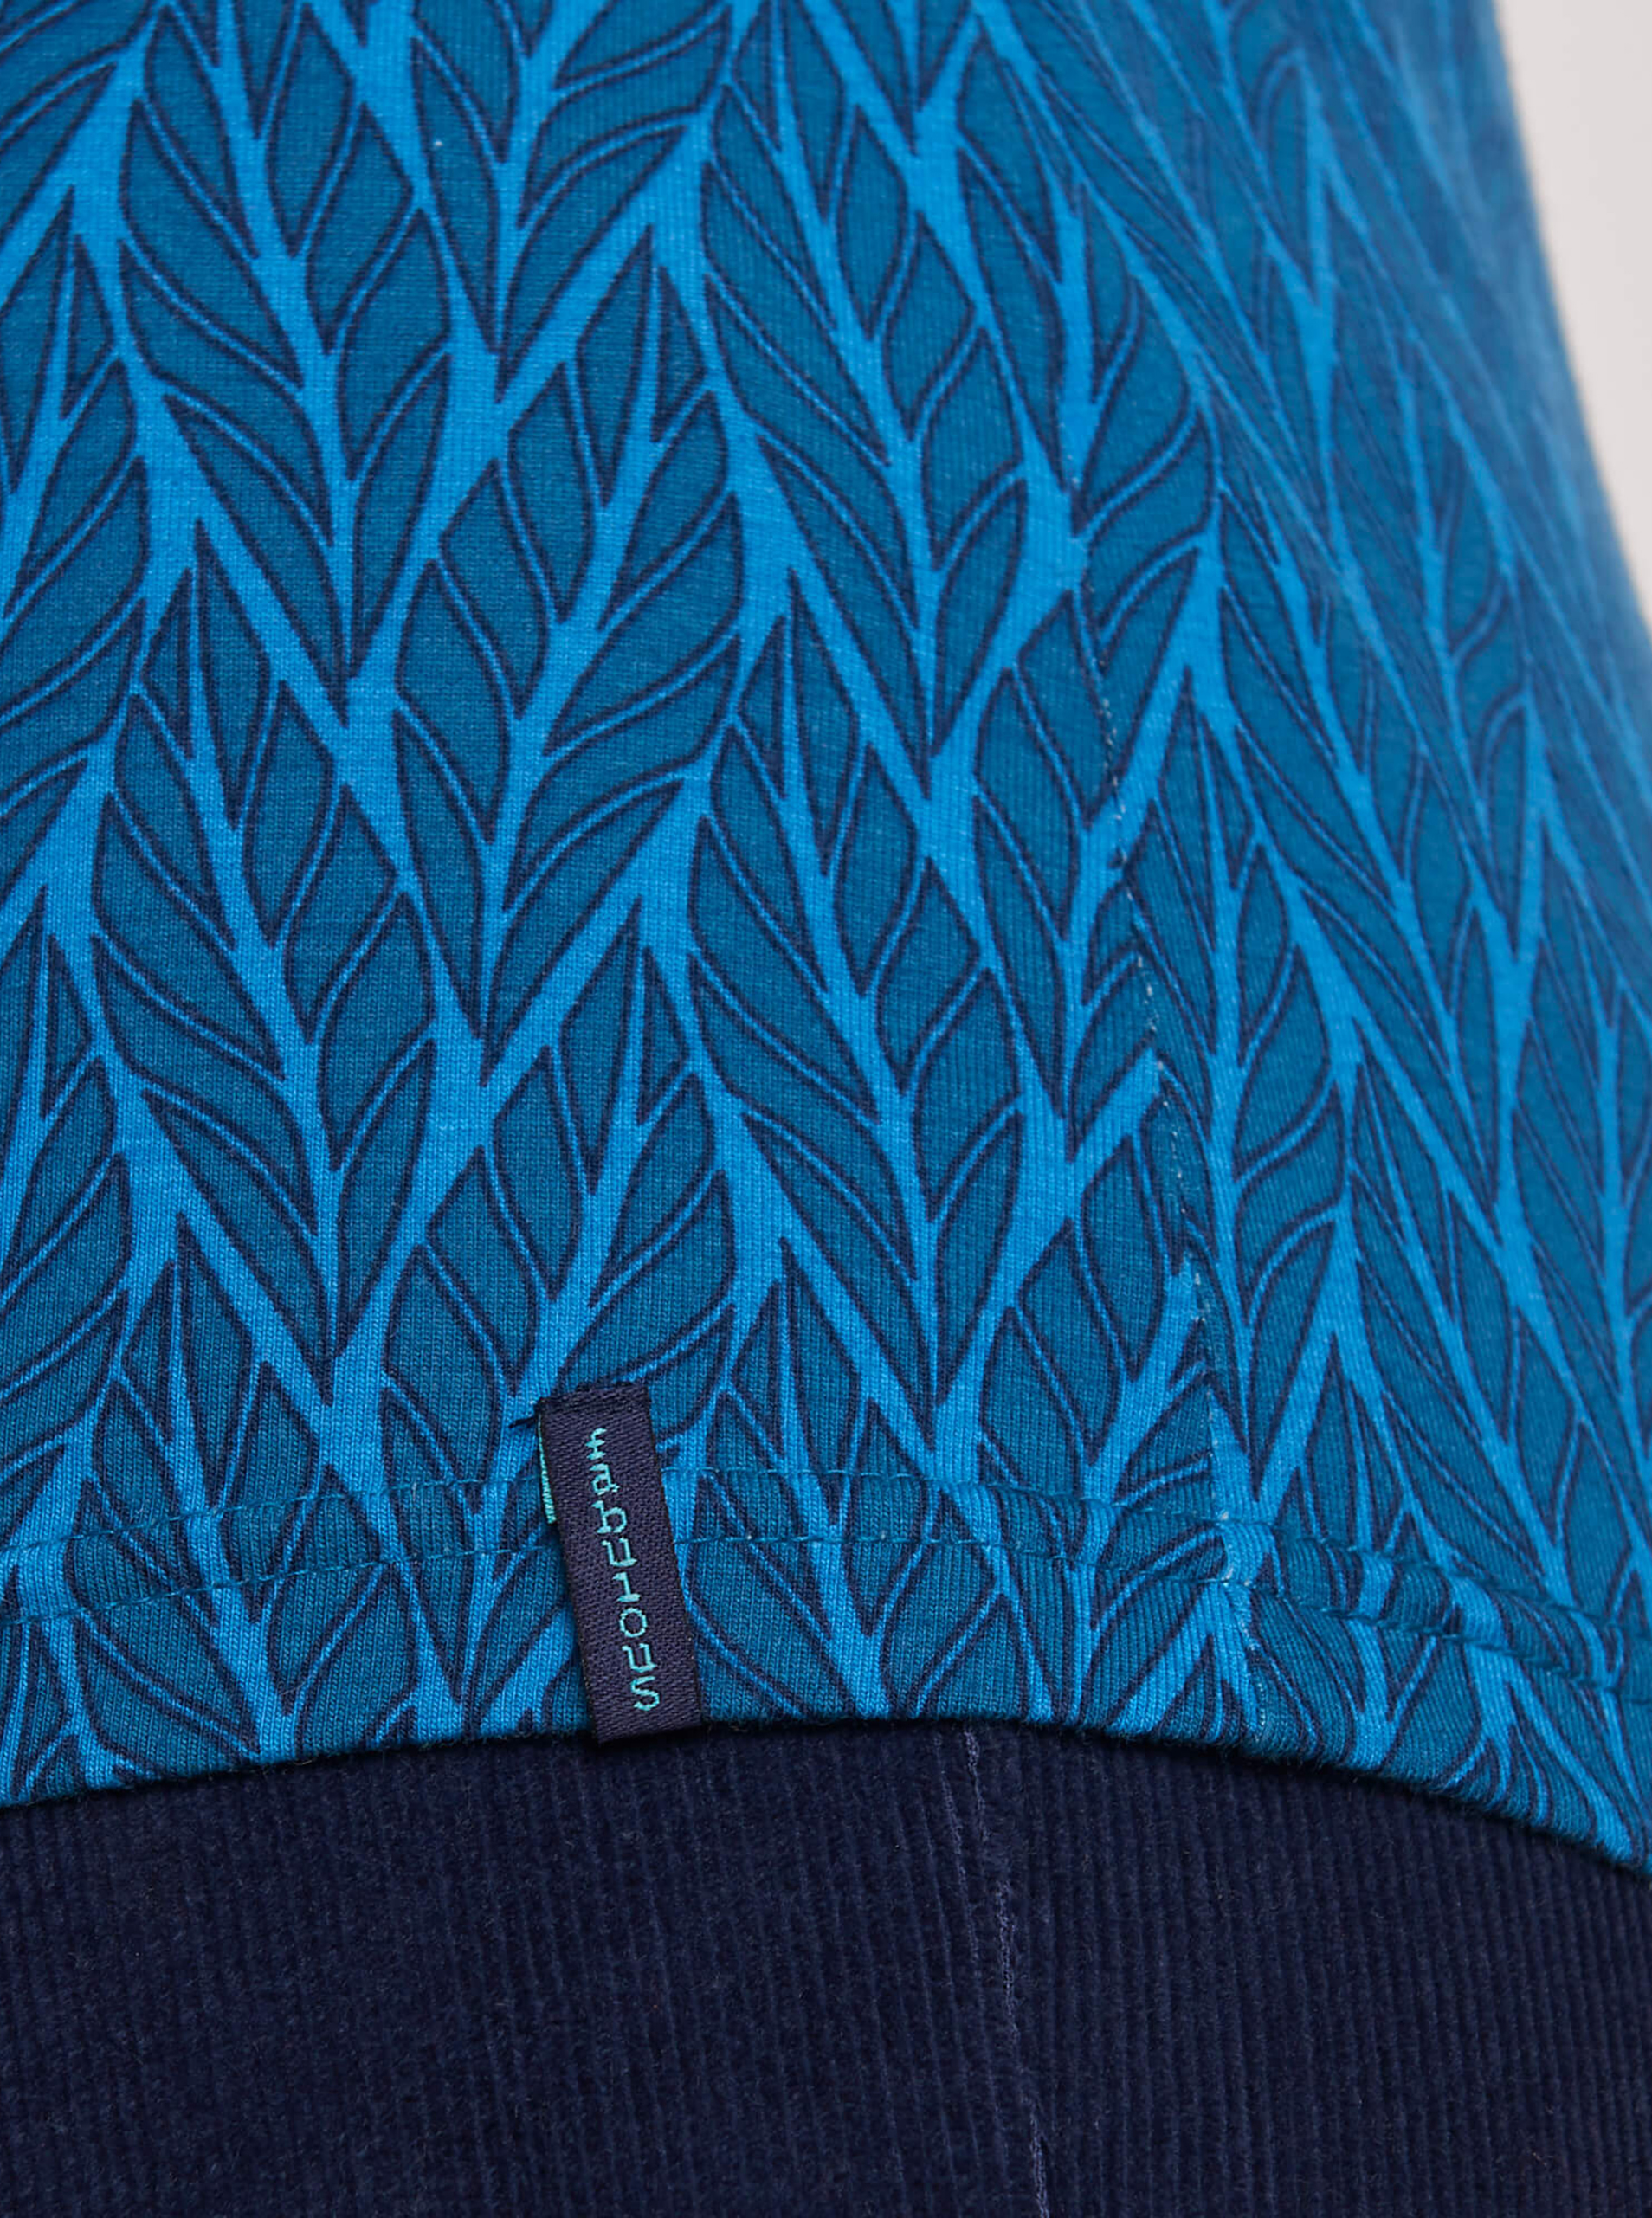 Tranquillo blue T-shirt with pattern